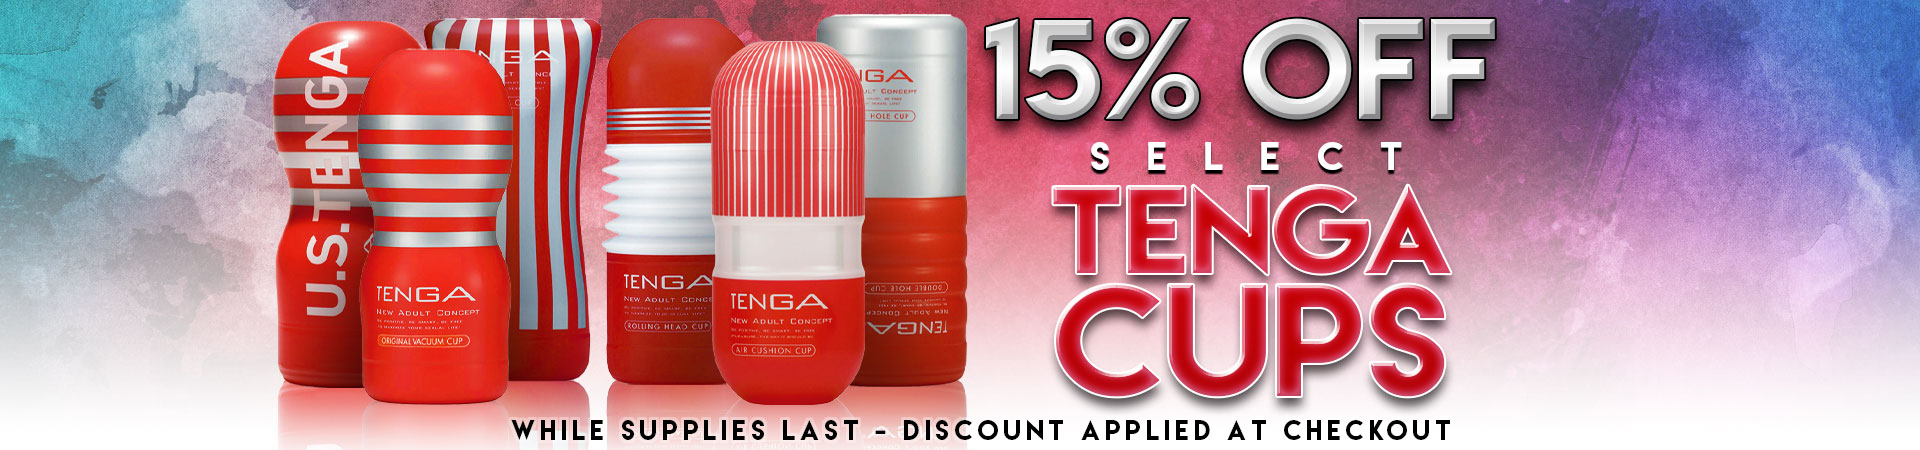 15% Off Select Tenga Cups - While Supplies Last!